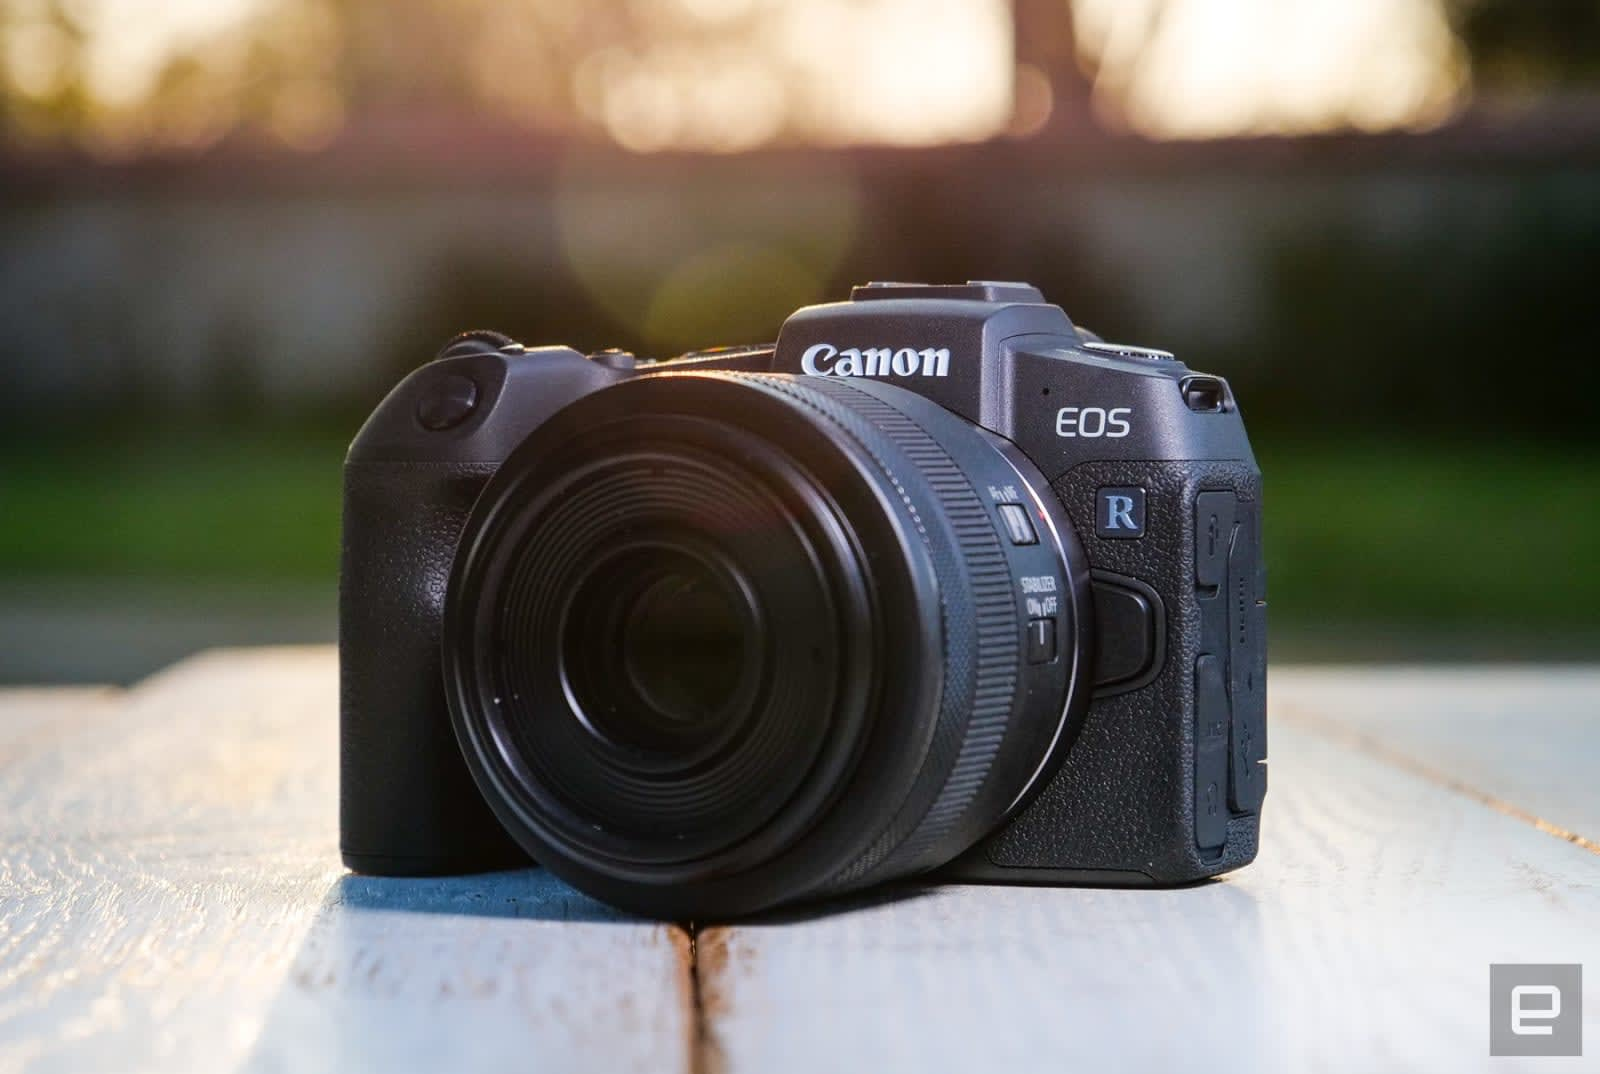 Canon Eos Rp Review A Full Frame Camera That Cuts Too Many